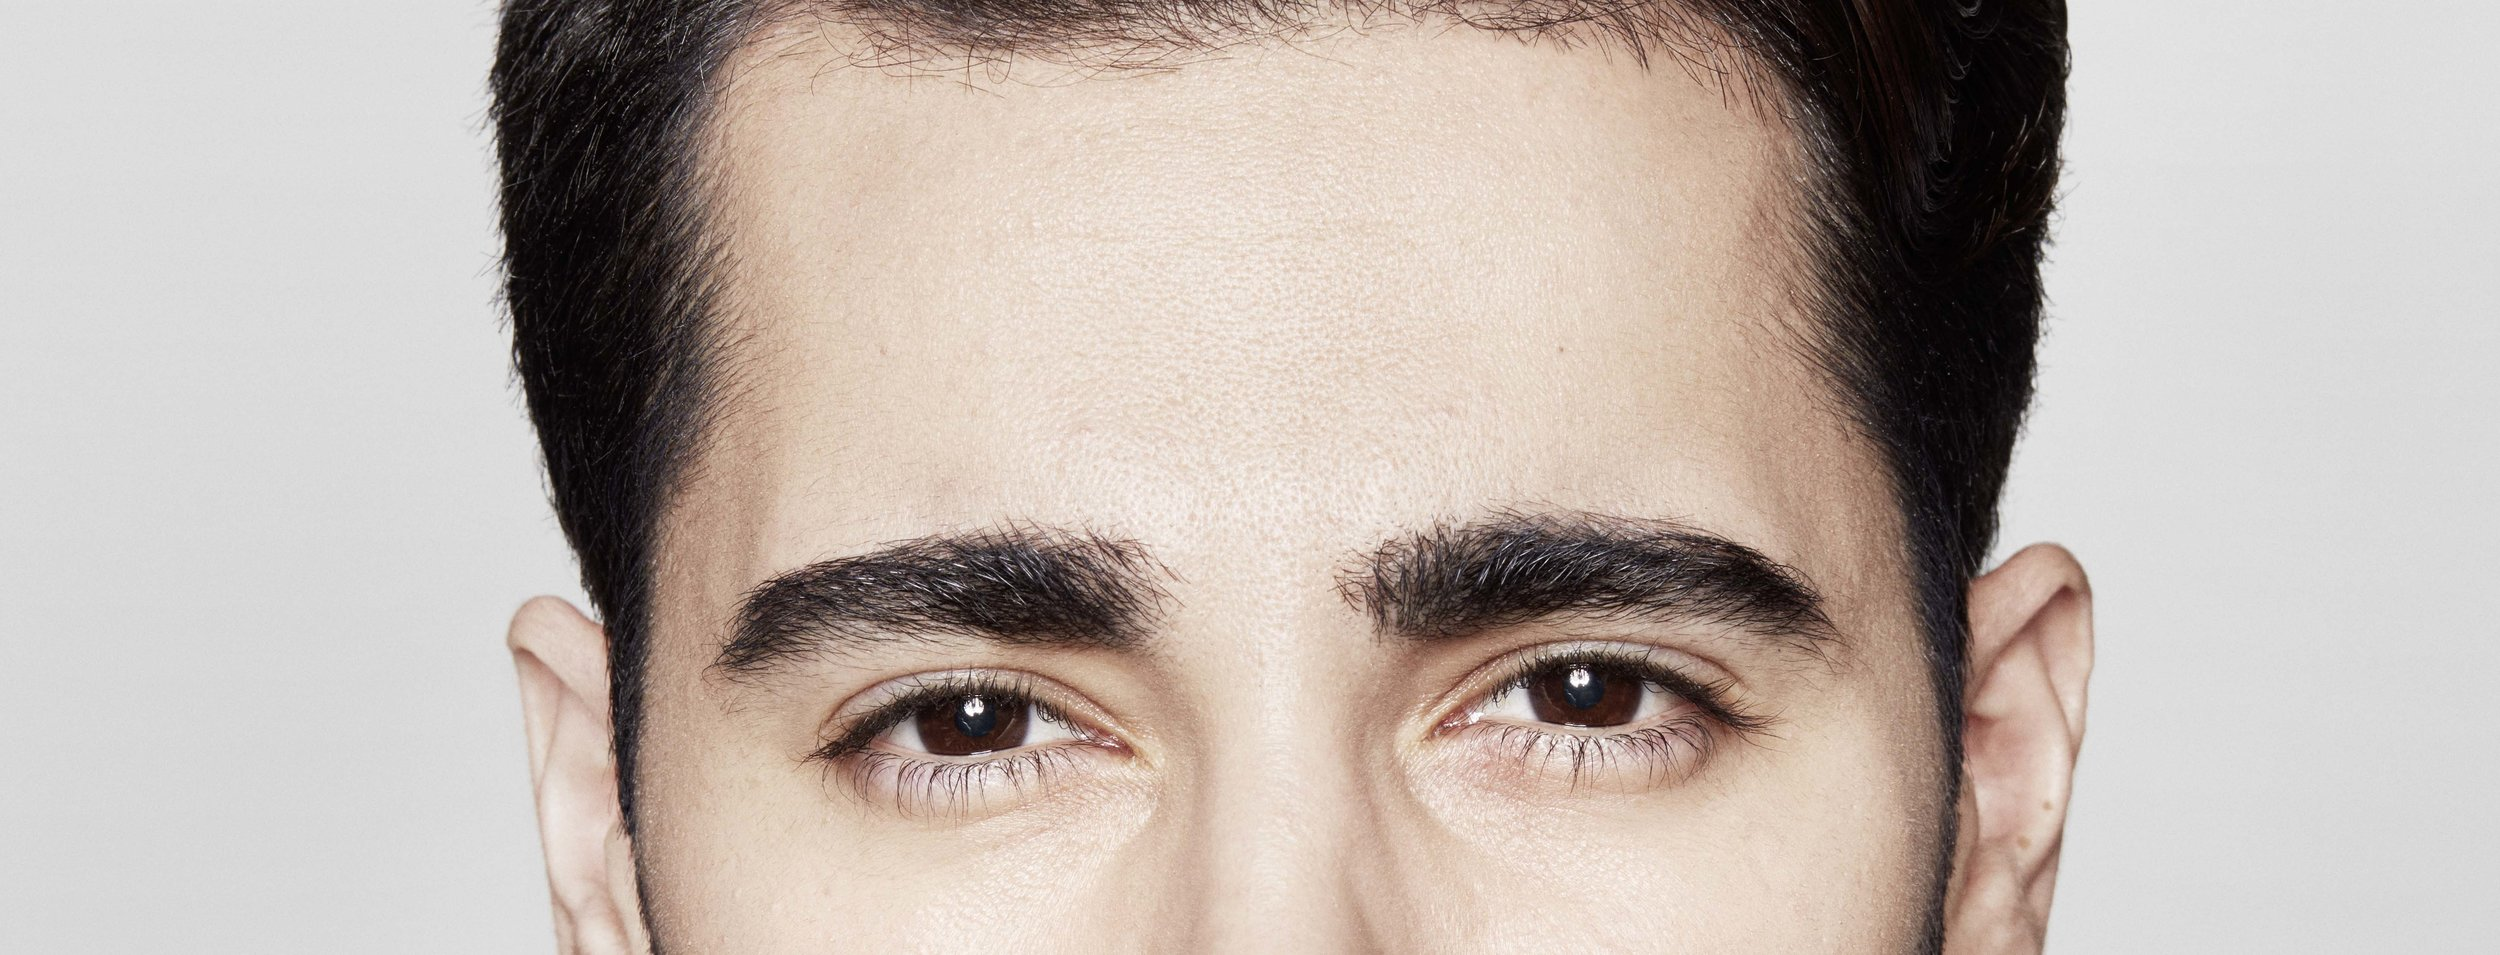 Mo Front Relaxed Cropped.jpg